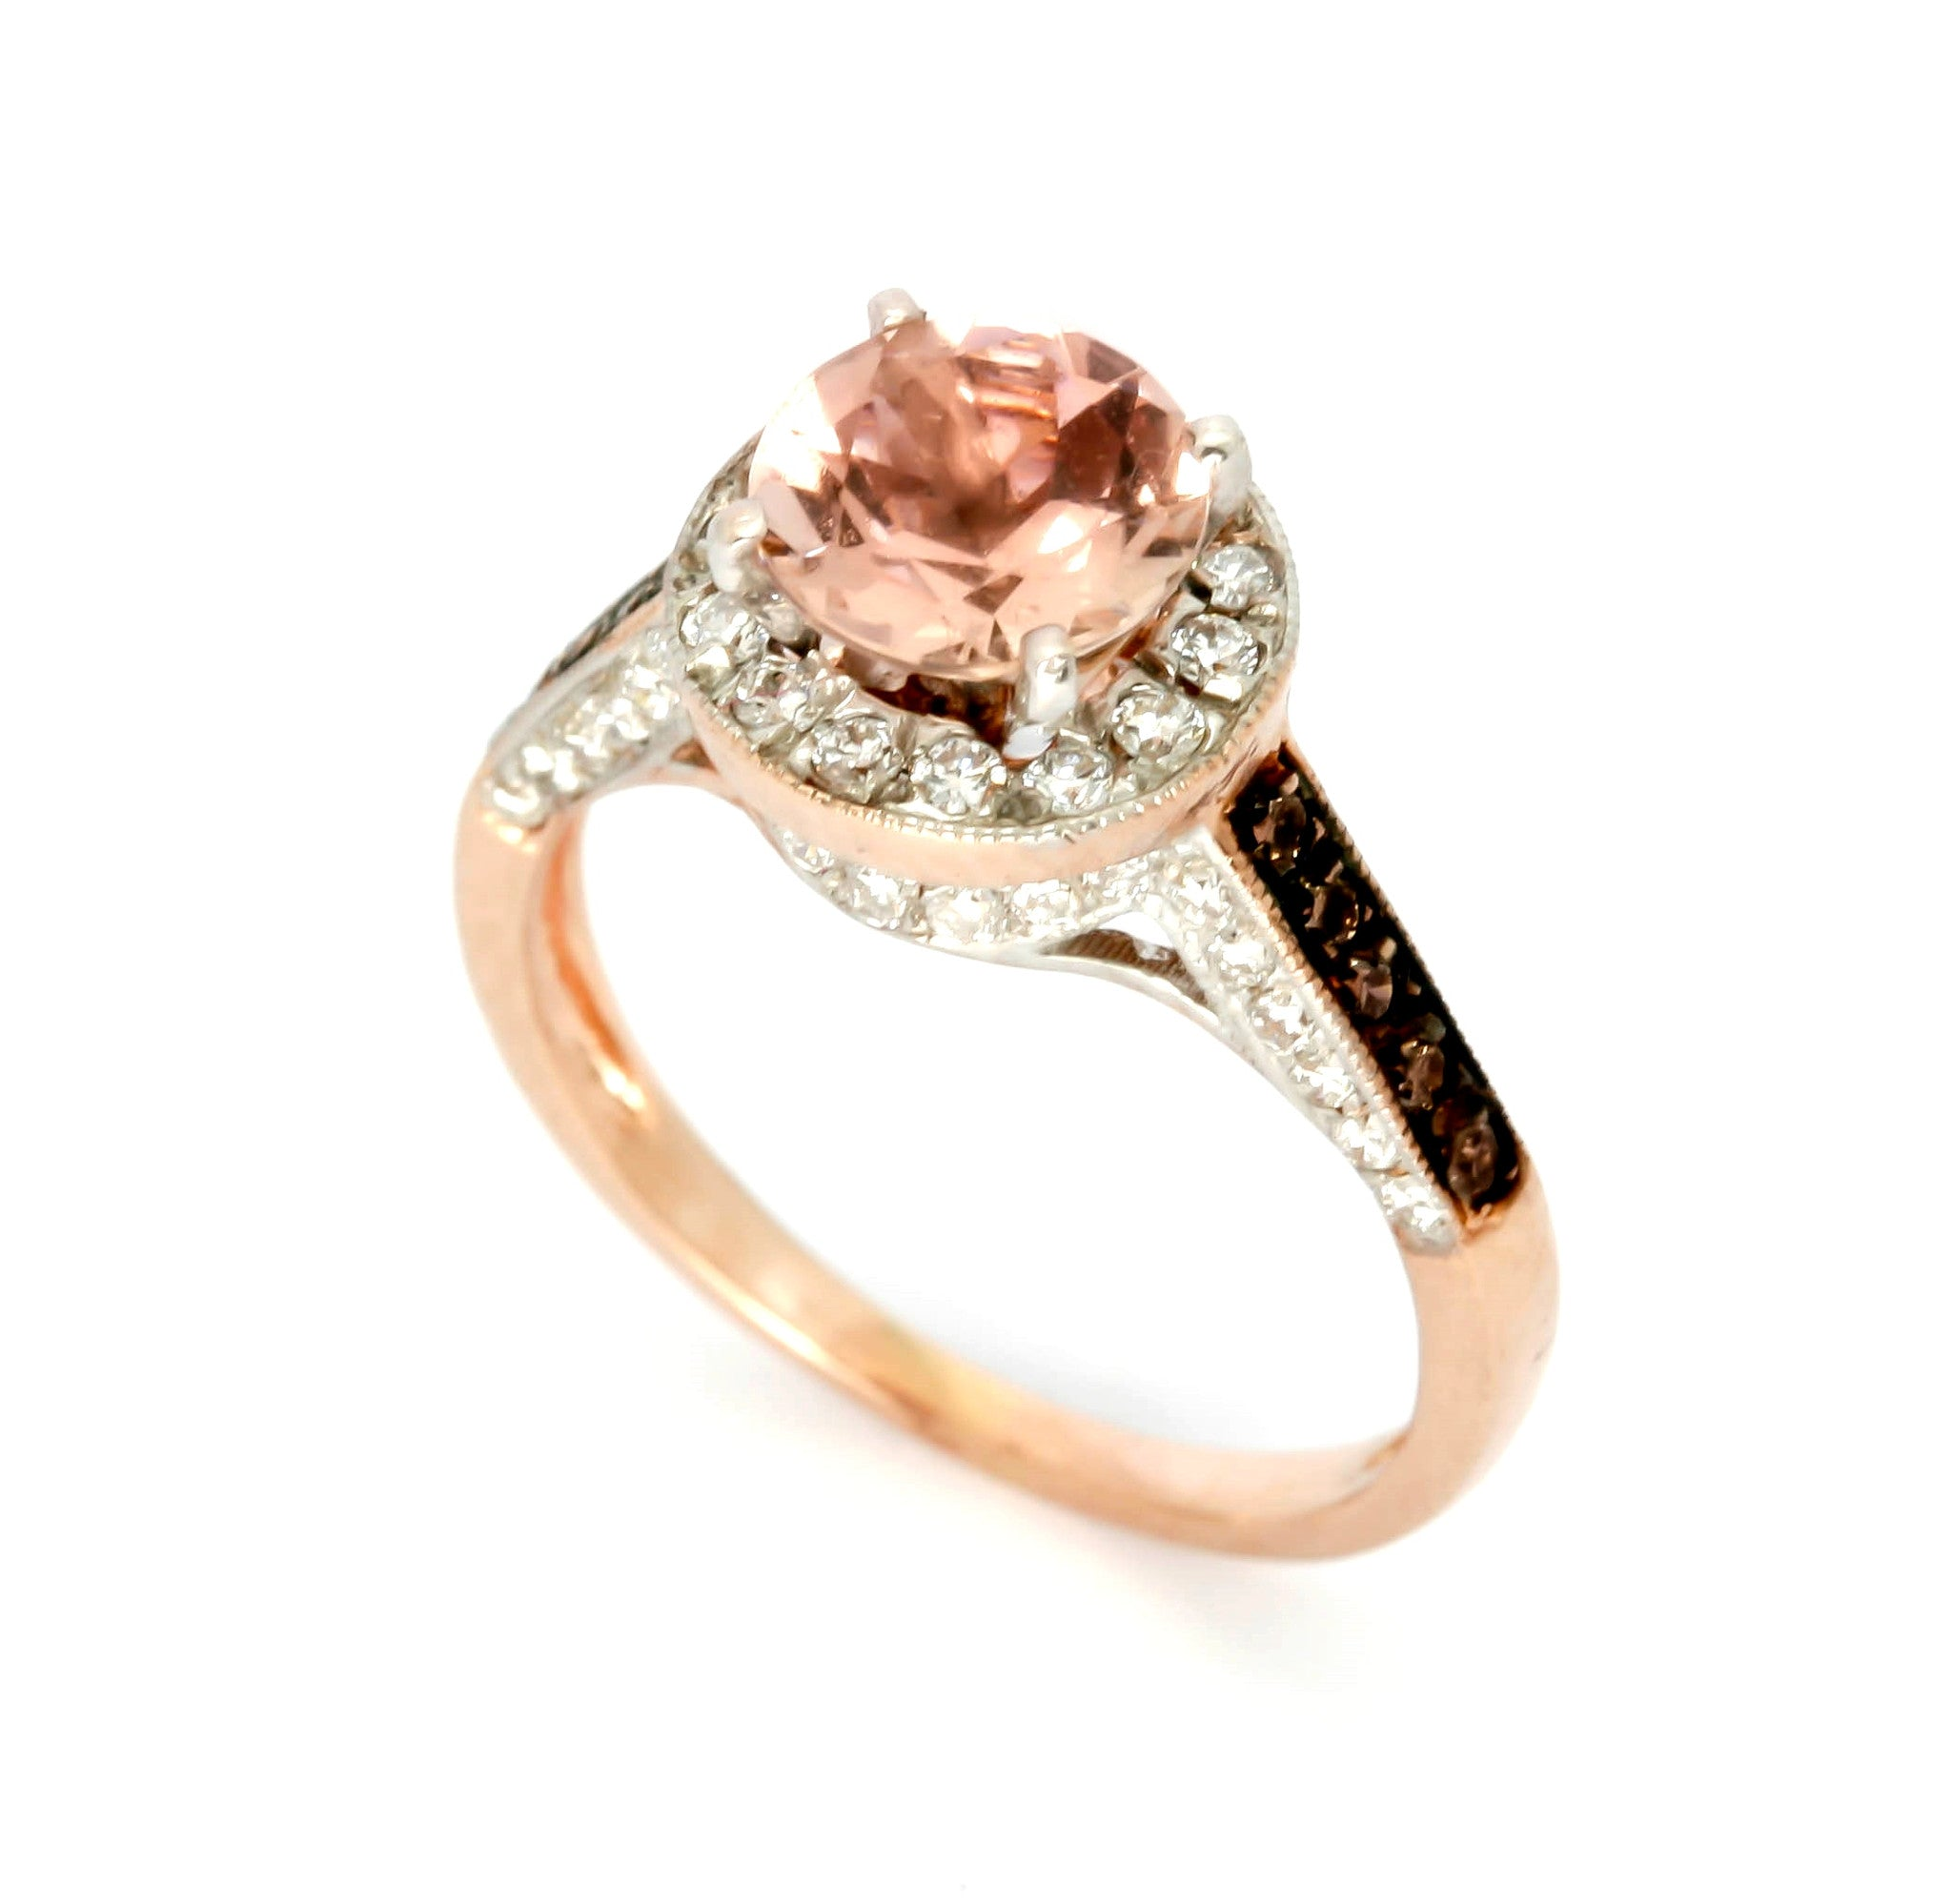 watch morganite rings with twisted ring princess cut wedding shank youtube gold rose filigree